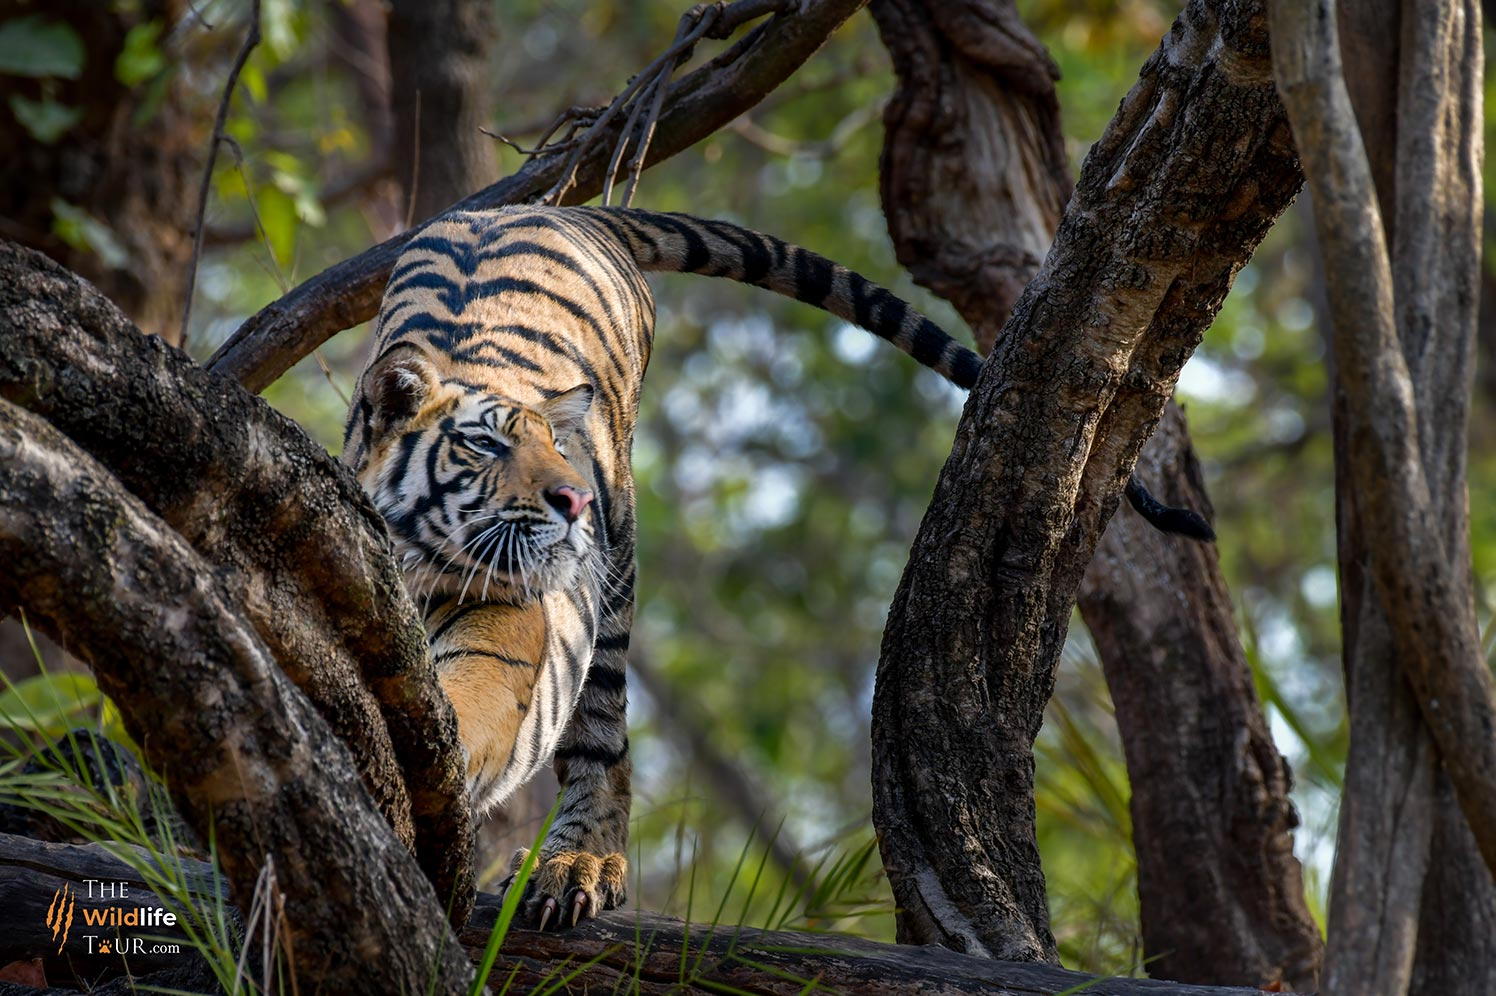 Tiger safari India | wildlife Tour of India |  wildlife safari India  |